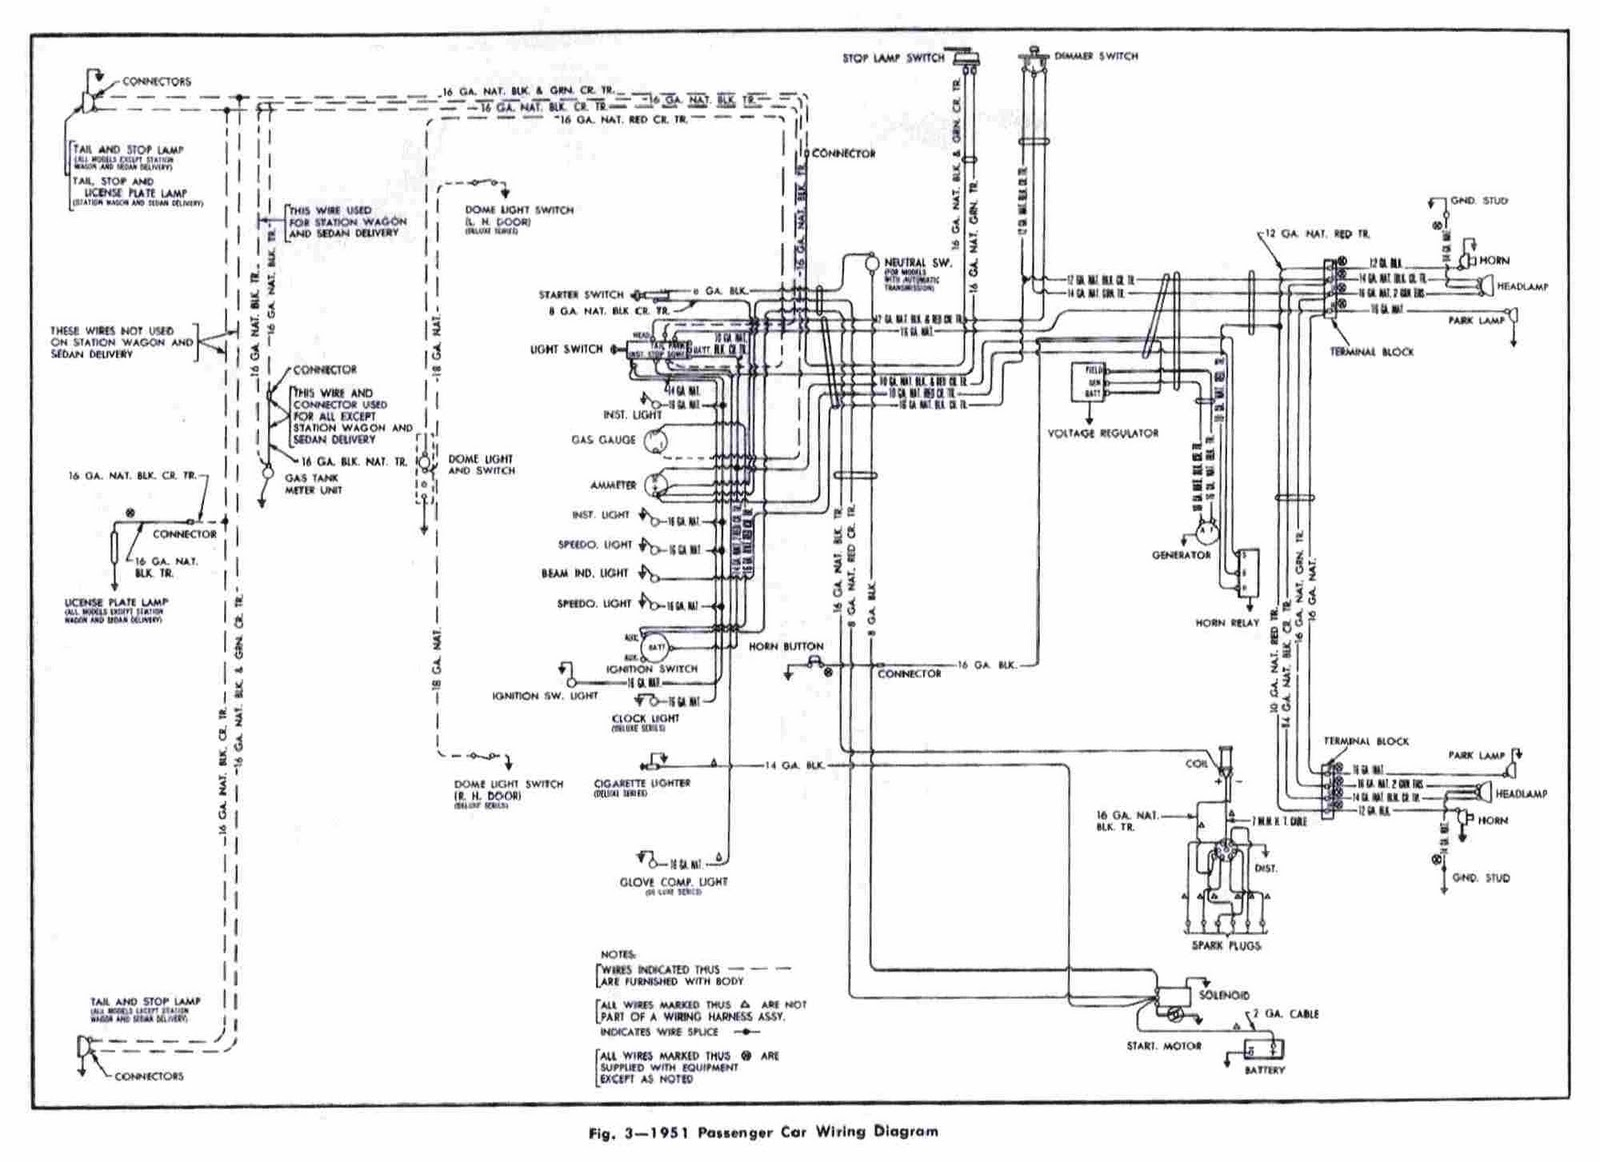 1951 Chevrolet Wiring Diagrams - free download wiring diagrams ...